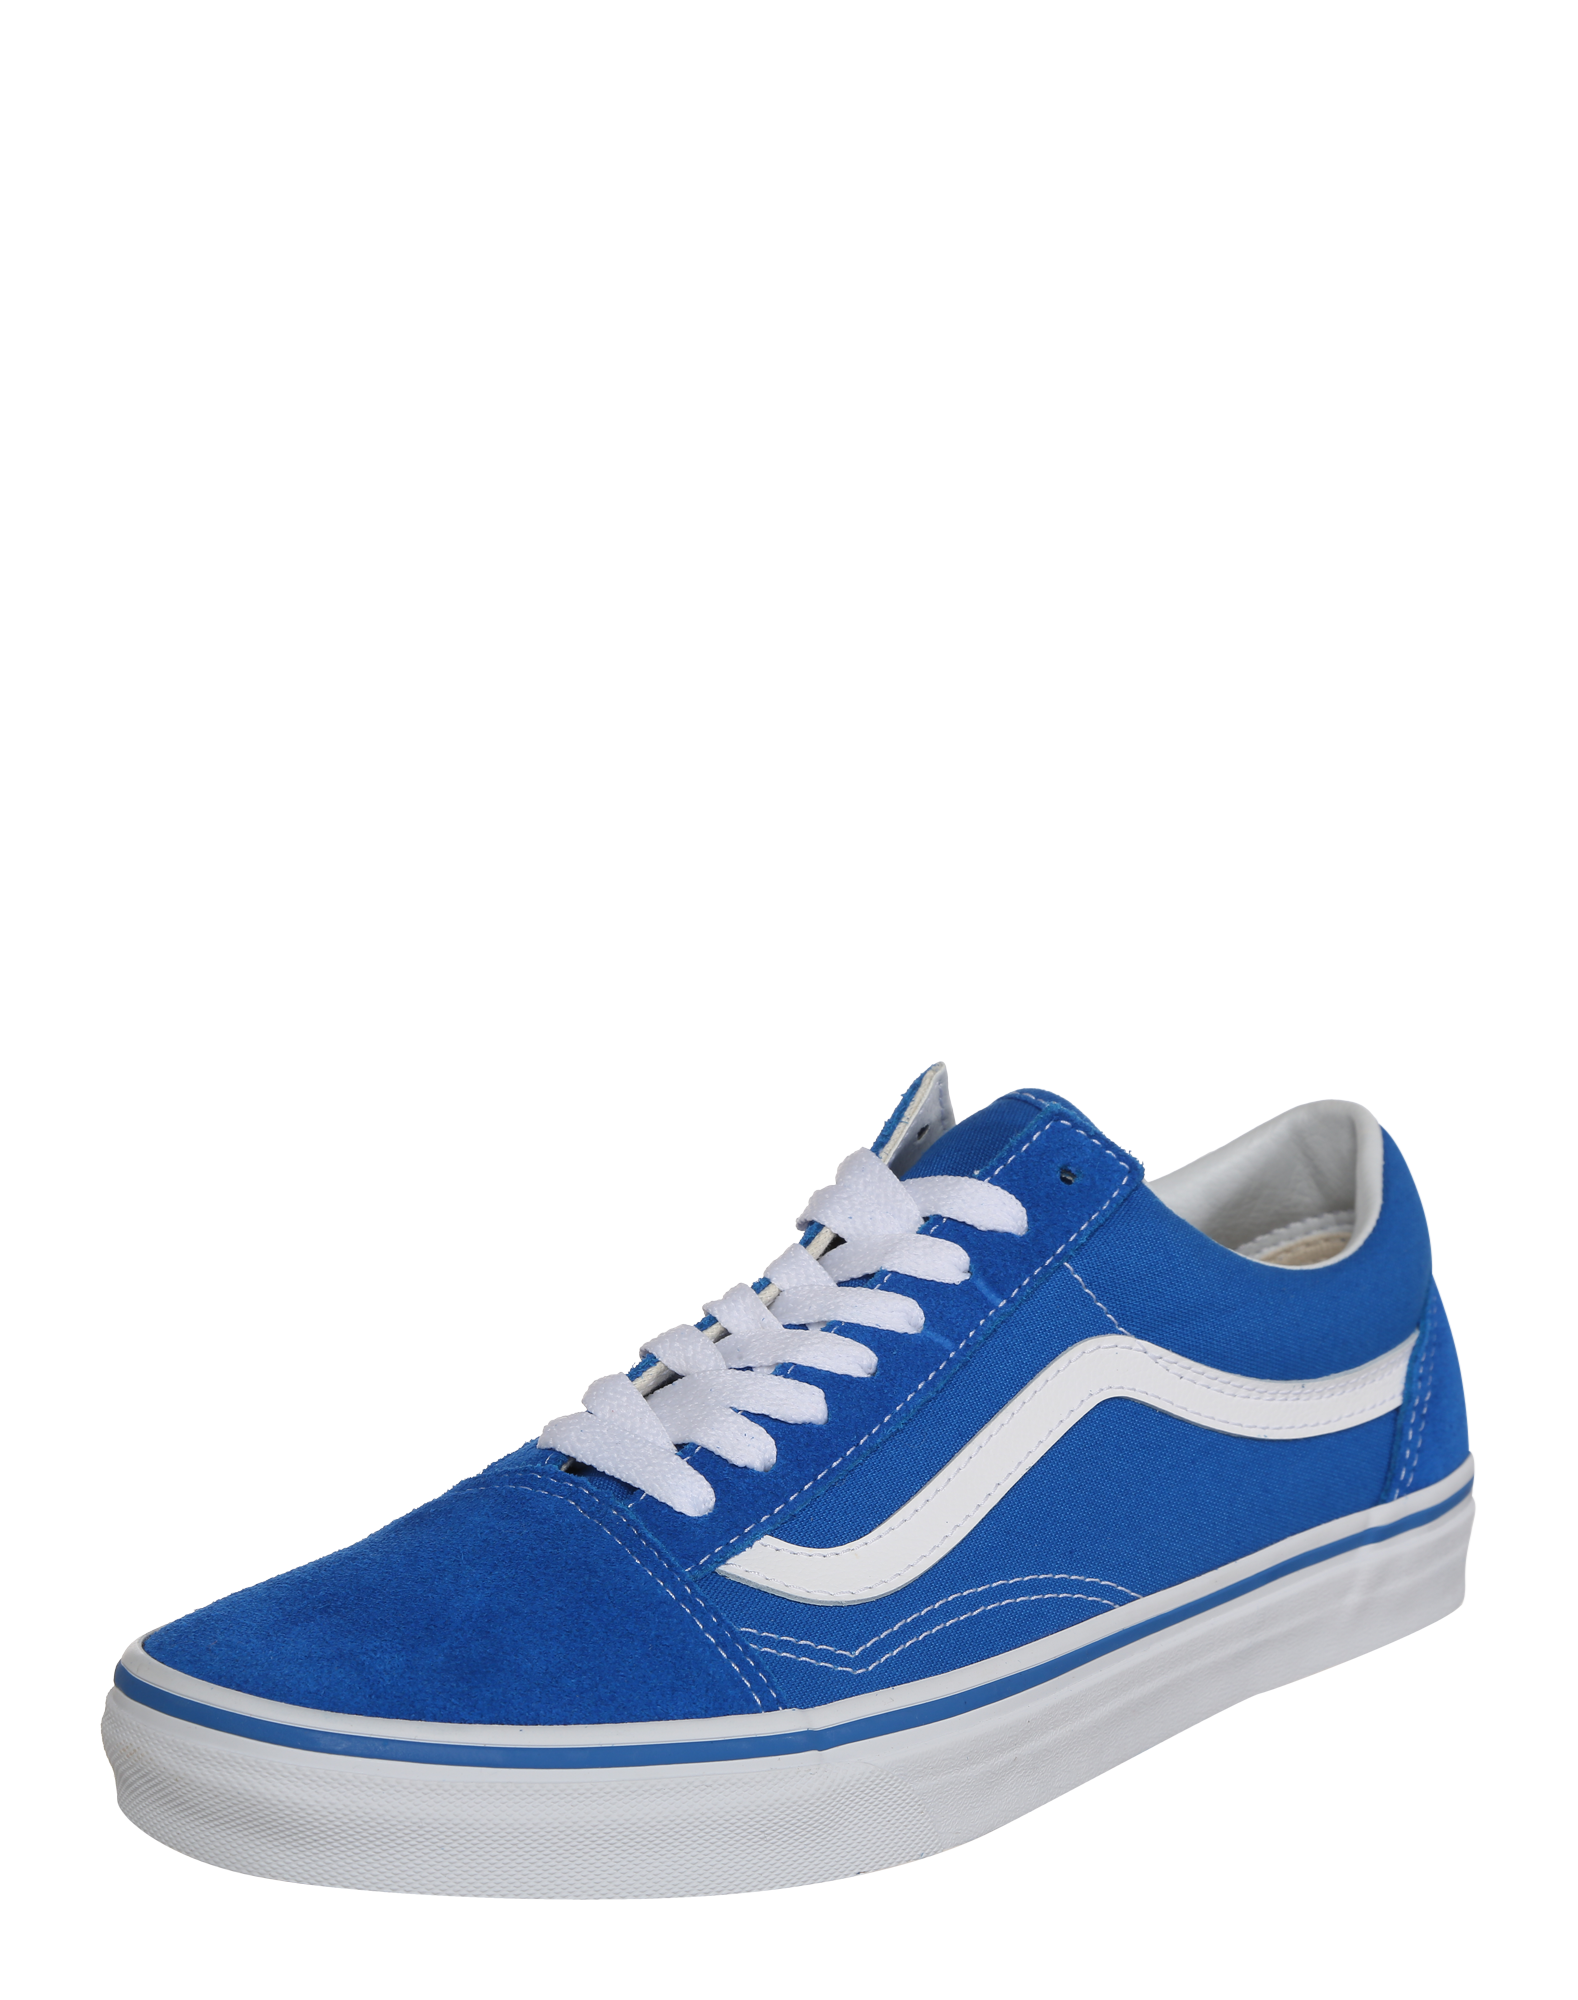 VANS Sneaker 'Old Skool' in Blau Weiß | ABOUT YOU | Schuhe